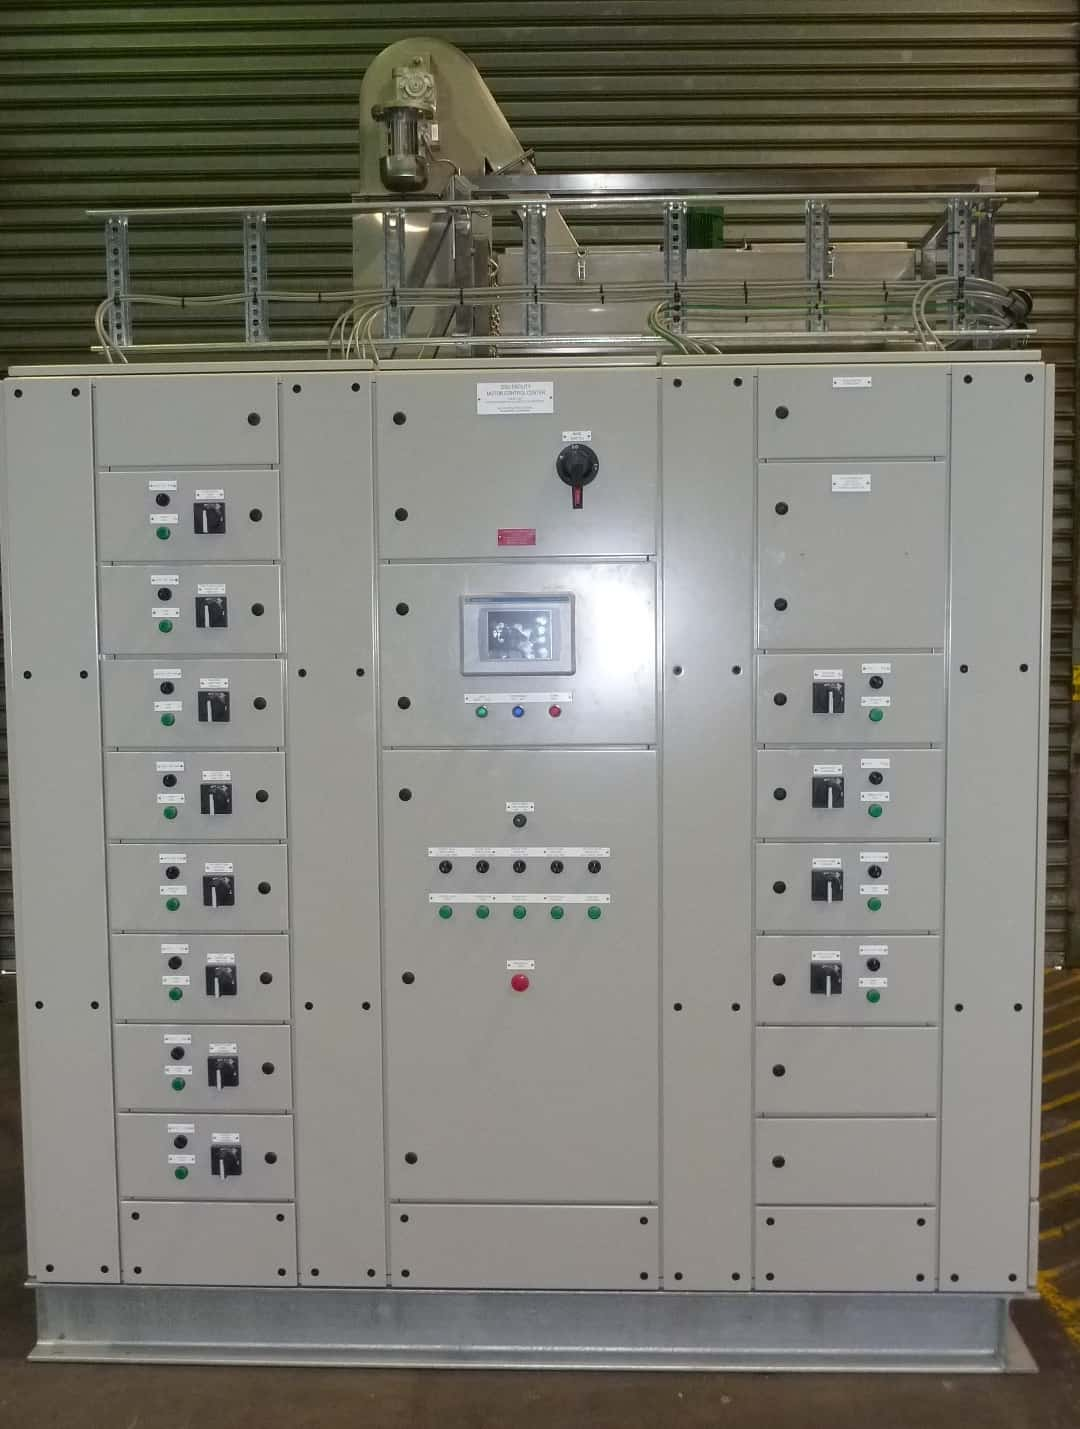 Skid mount control panel for custom fabricated wasterwater treatment equipment